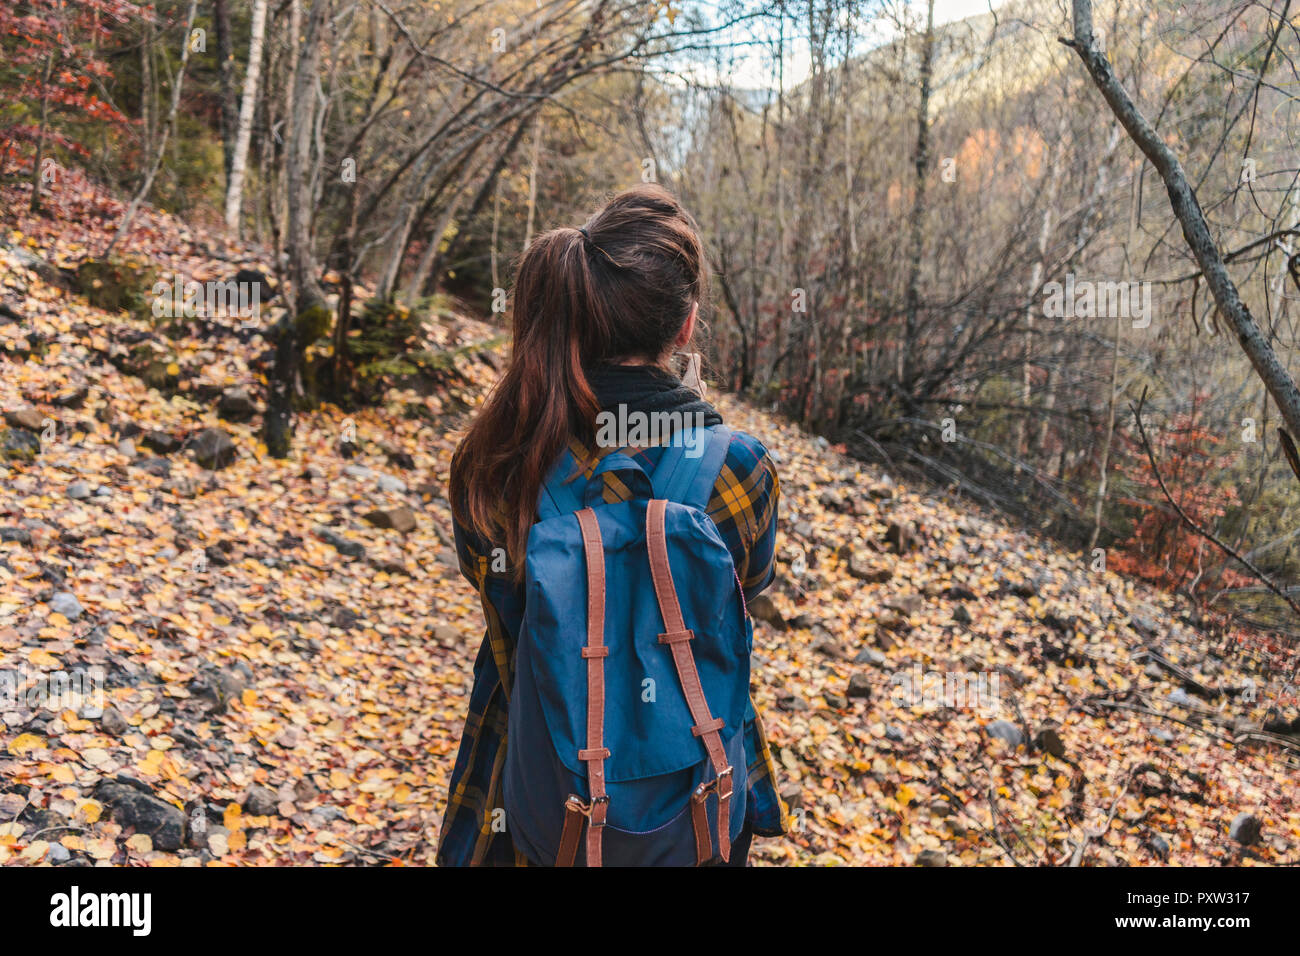 Spain, Ordesa y Monte Perdido National Park, back view of woman with backpack in autumnal forest - Stock Image